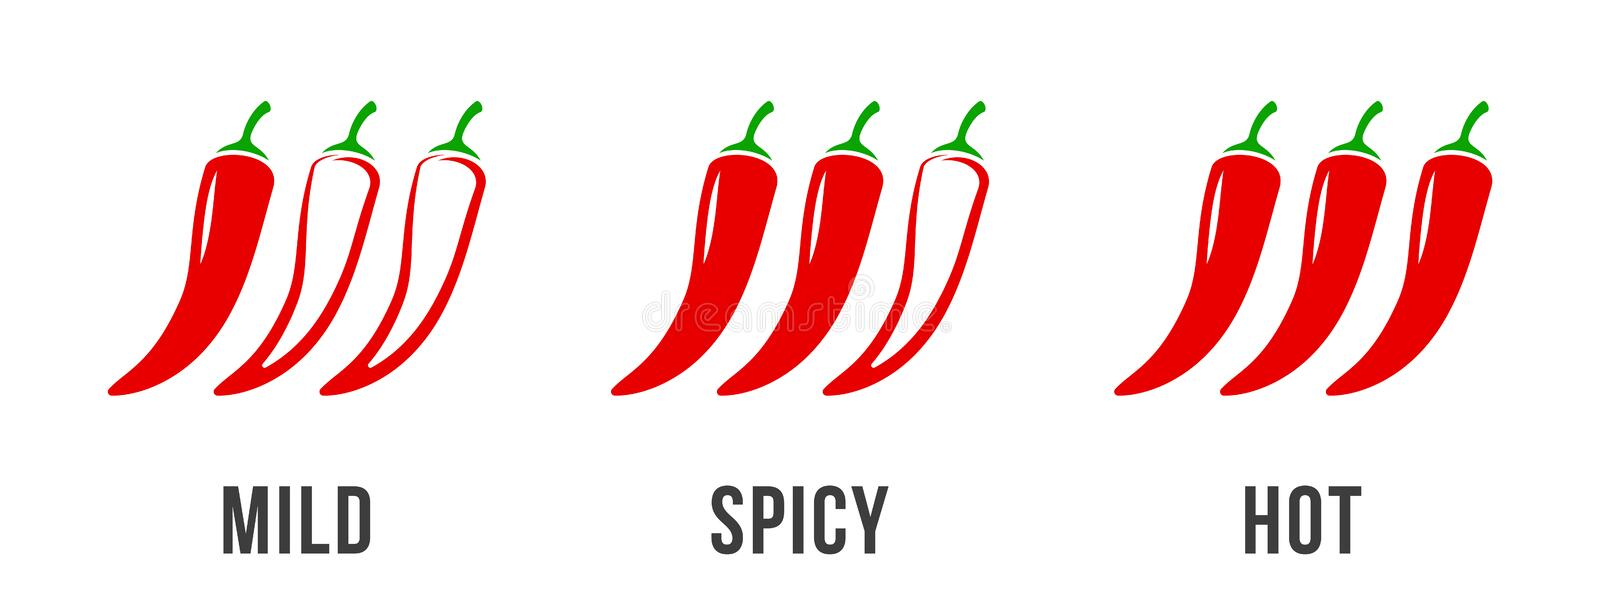 Spicy chili pepper level labels. Vector spicy food mild and extra hot sauce, chili pepper red outline icons. Spicy chili pepper level labels. Vector spicy food stock illustration